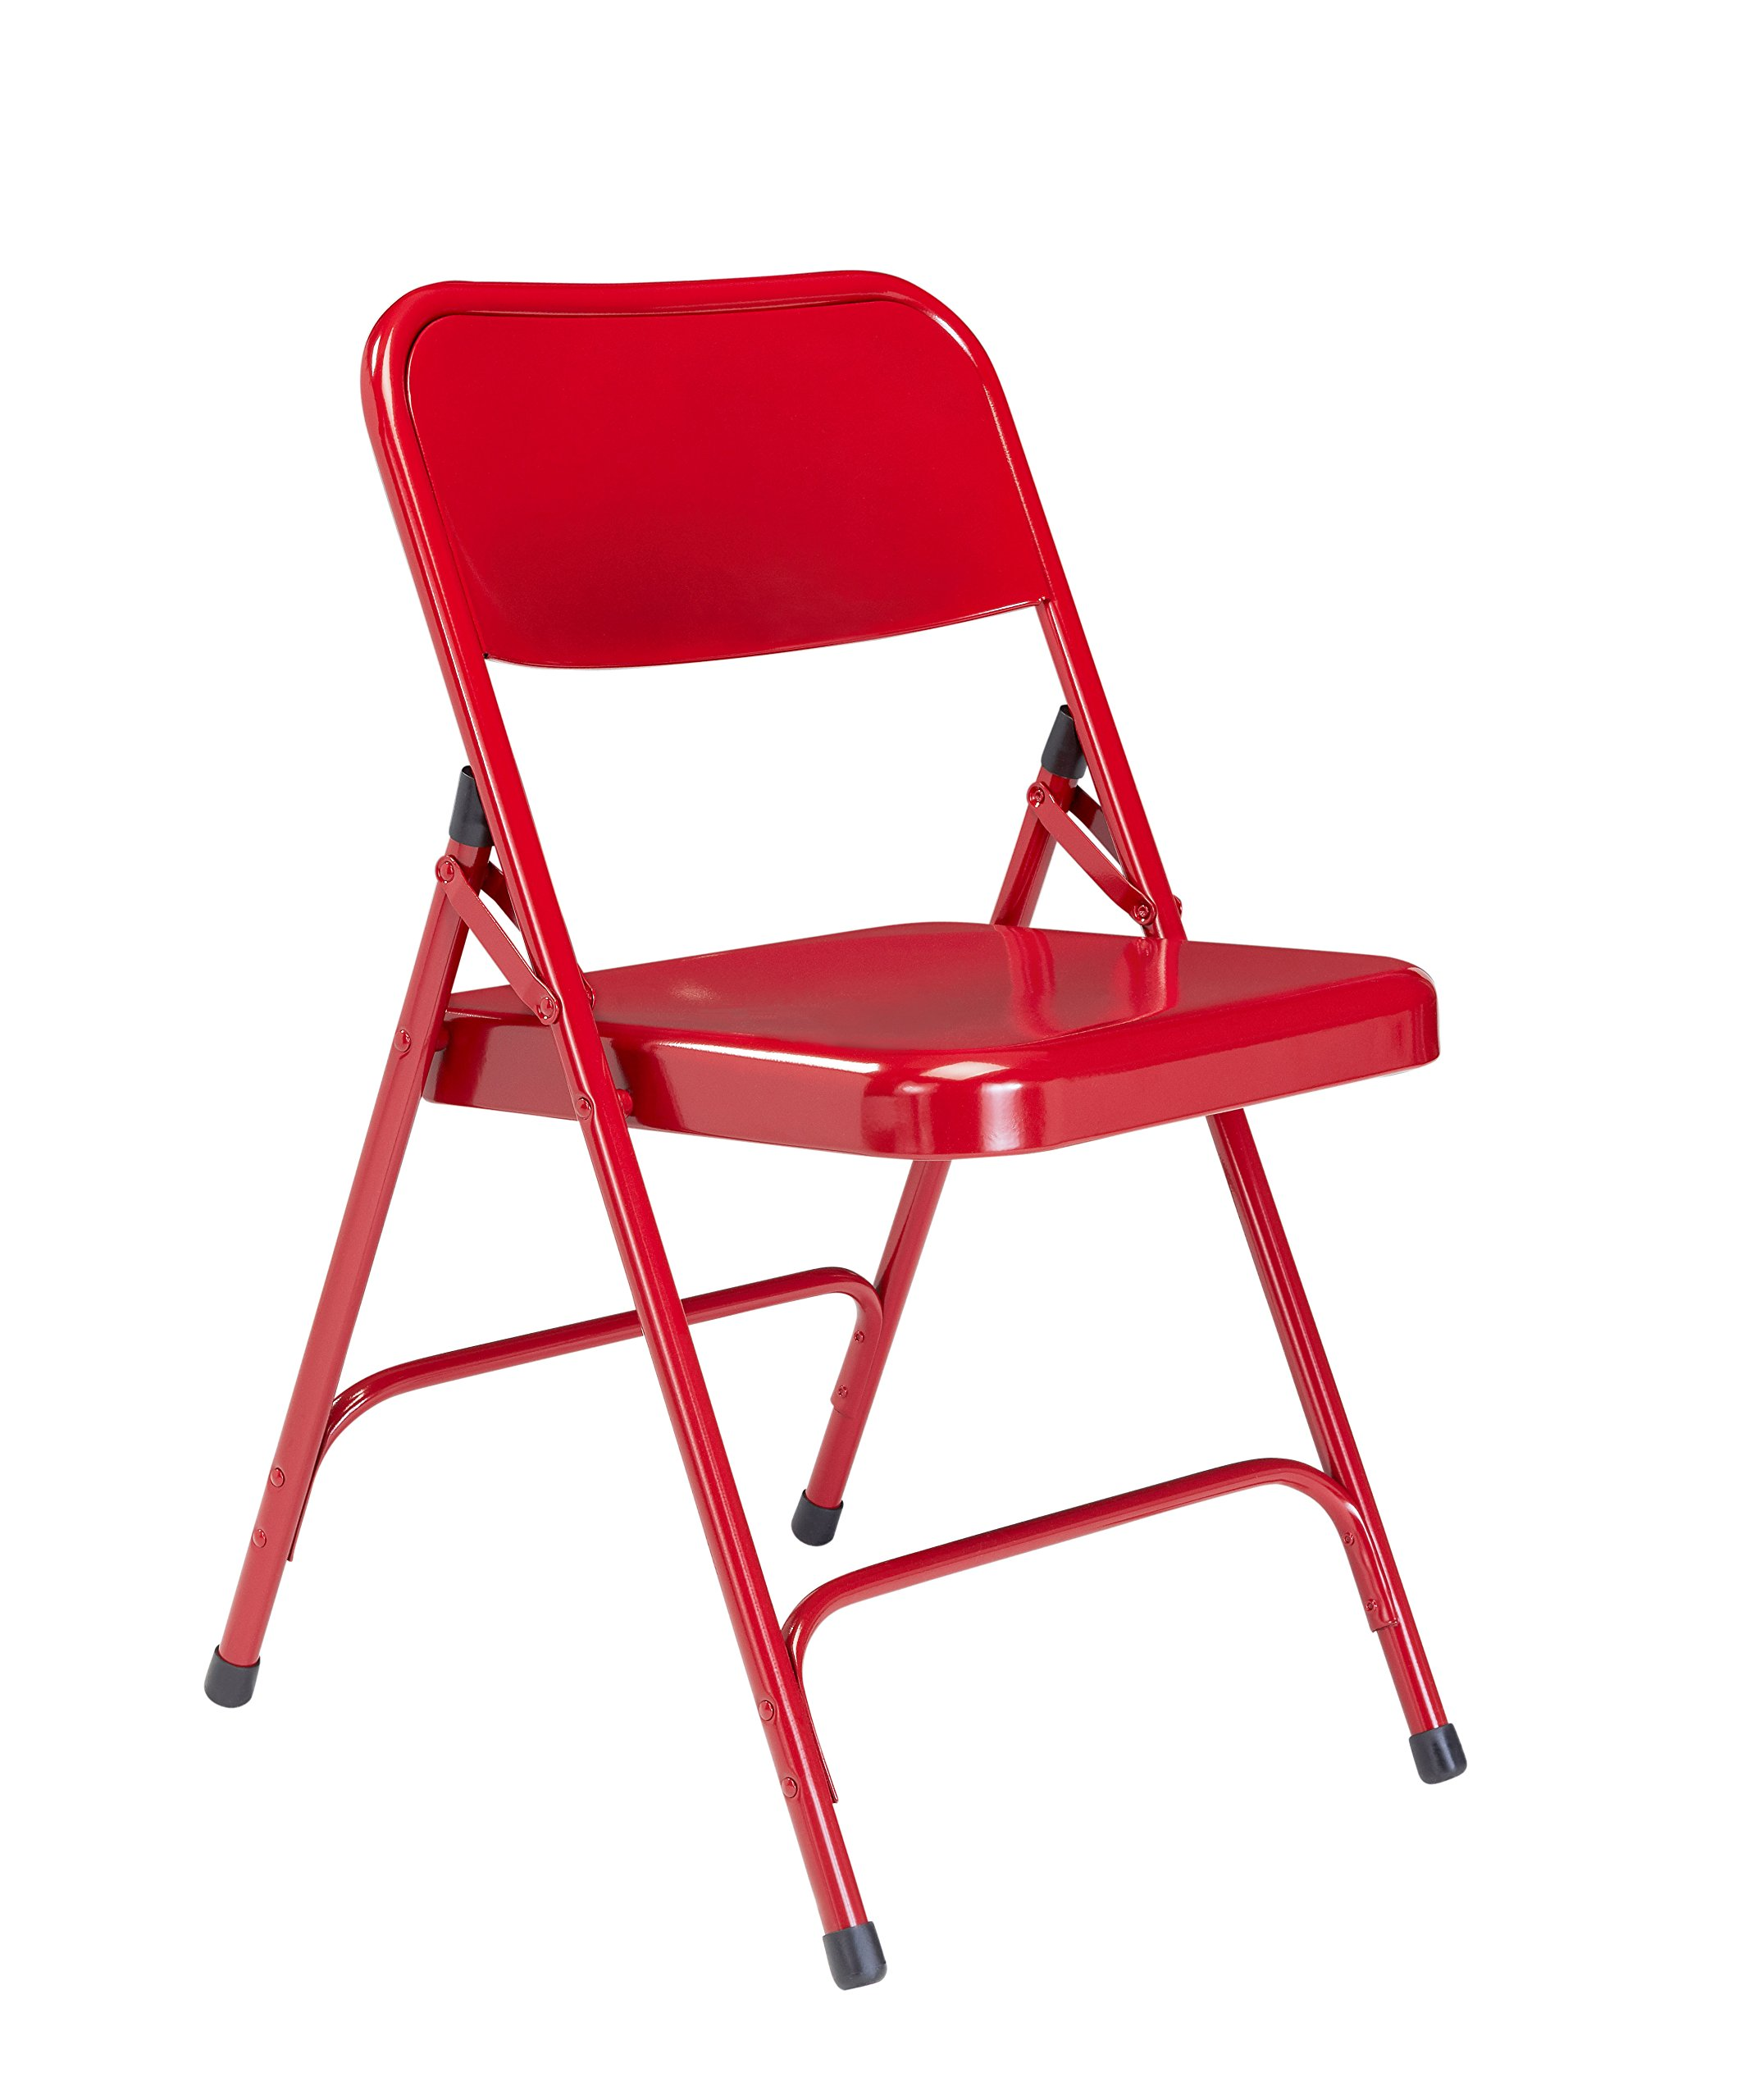 National Public Seating 200 Series All Steel Premium Folding Chair with Double Brace, 480 lbs Capacity, Red (Carton of 4)